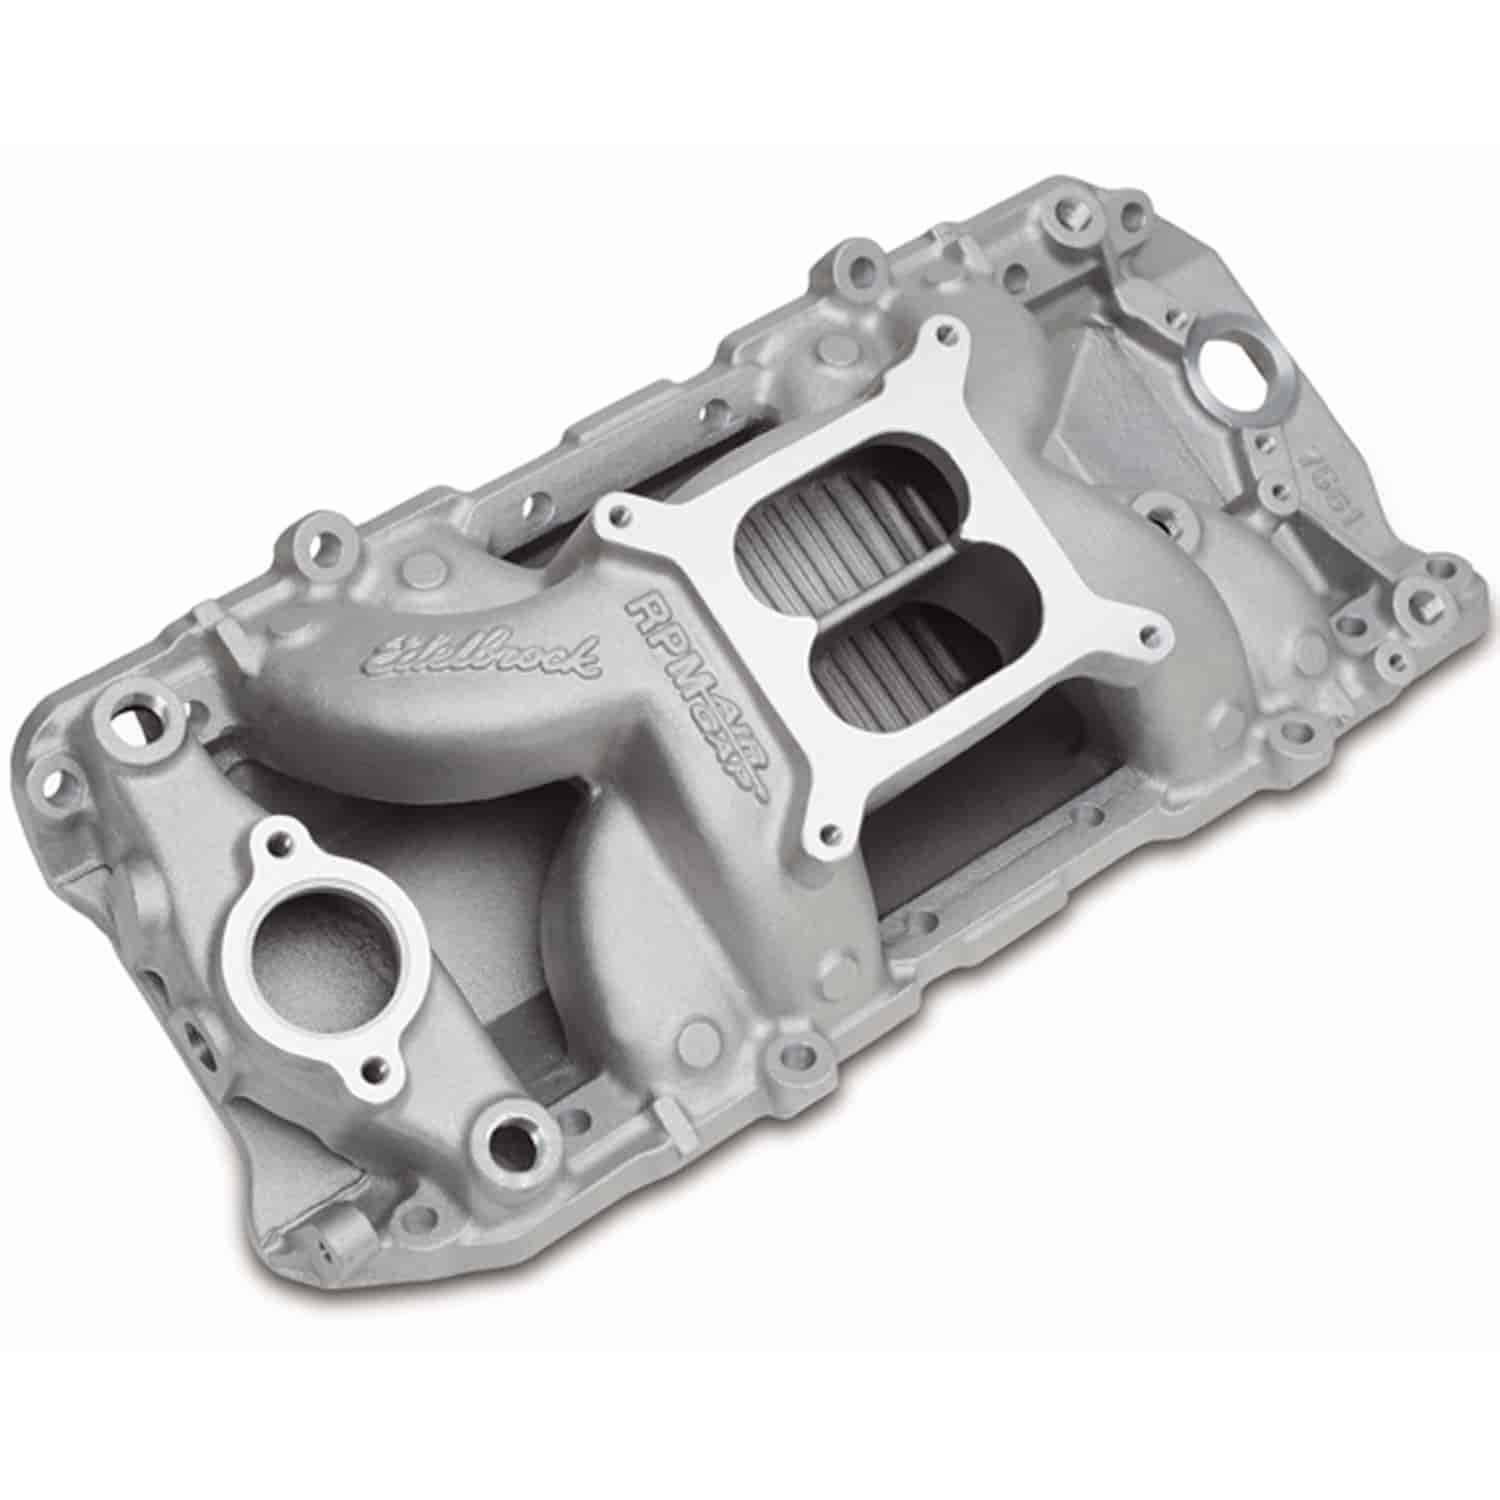 Edelbrock 7561 Rpm Air Gap 2 O Intake Manifold Bb Chevy 396 502 196567 Power Steering Pump Corvette Parts And Accessories